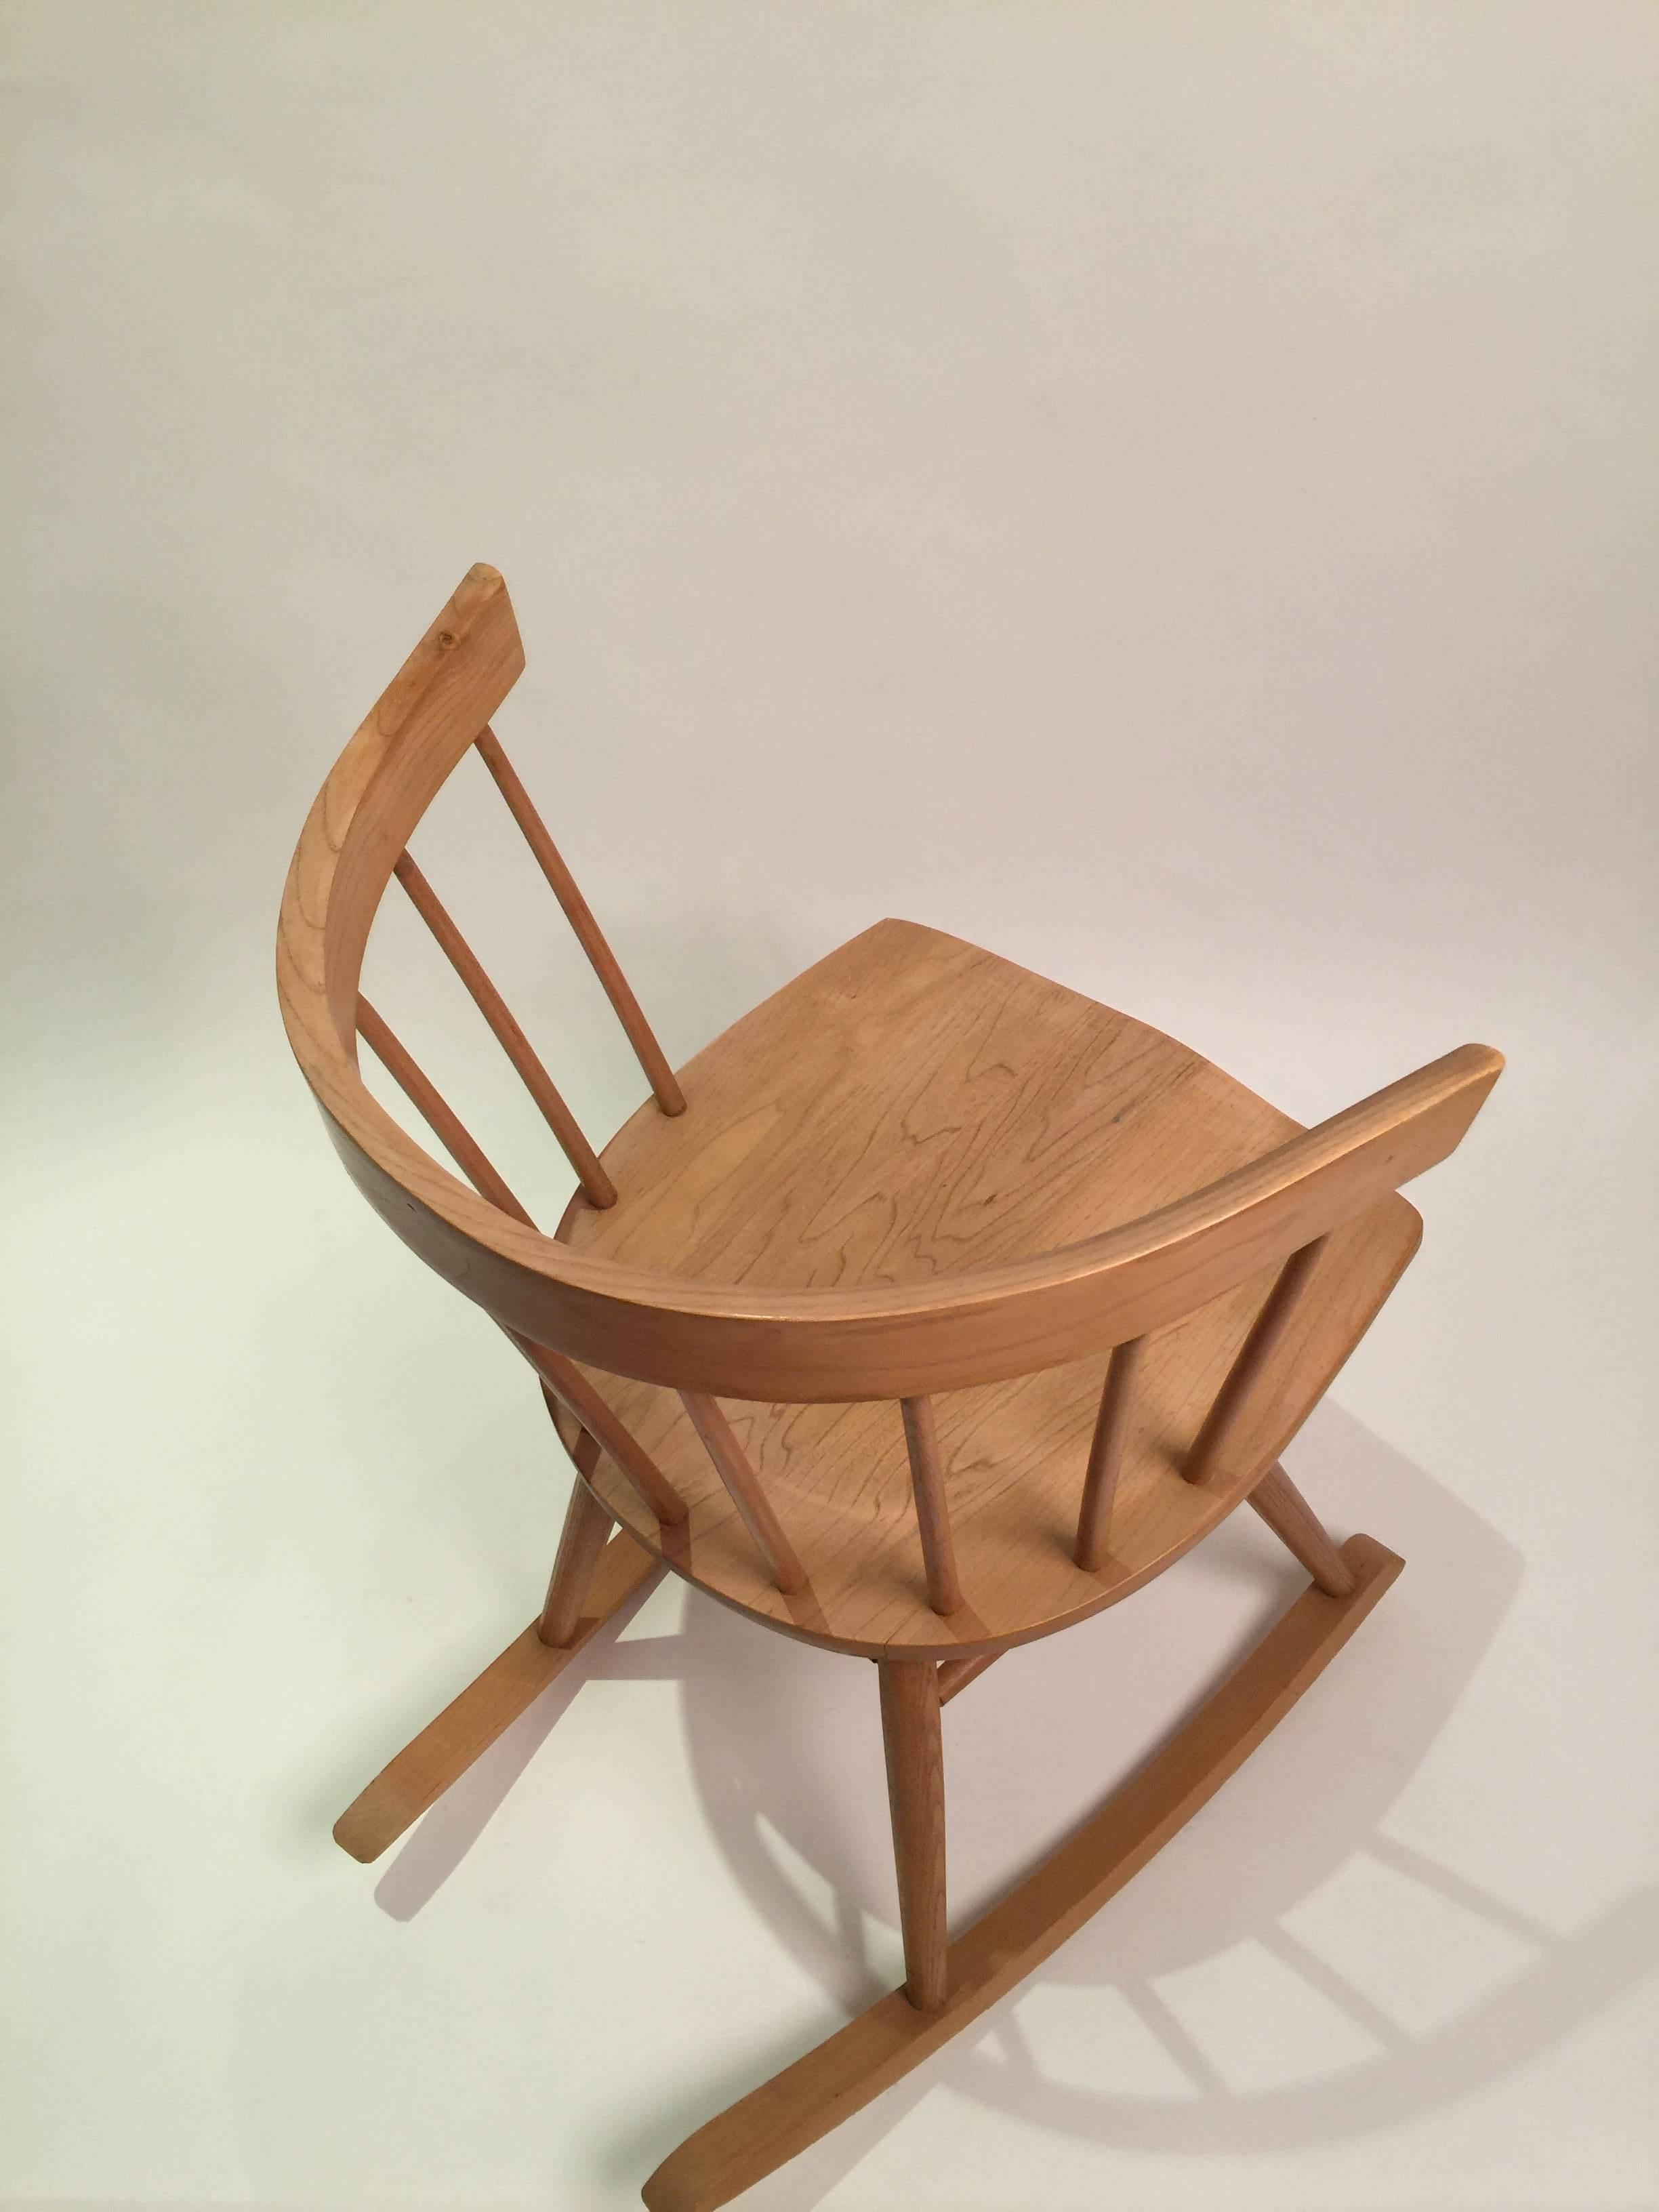 Wondrous Nakashima Attributed Ercol For Knoll Strait Rocking Chair Andrewgaddart Wooden Chair Designs For Living Room Andrewgaddartcom